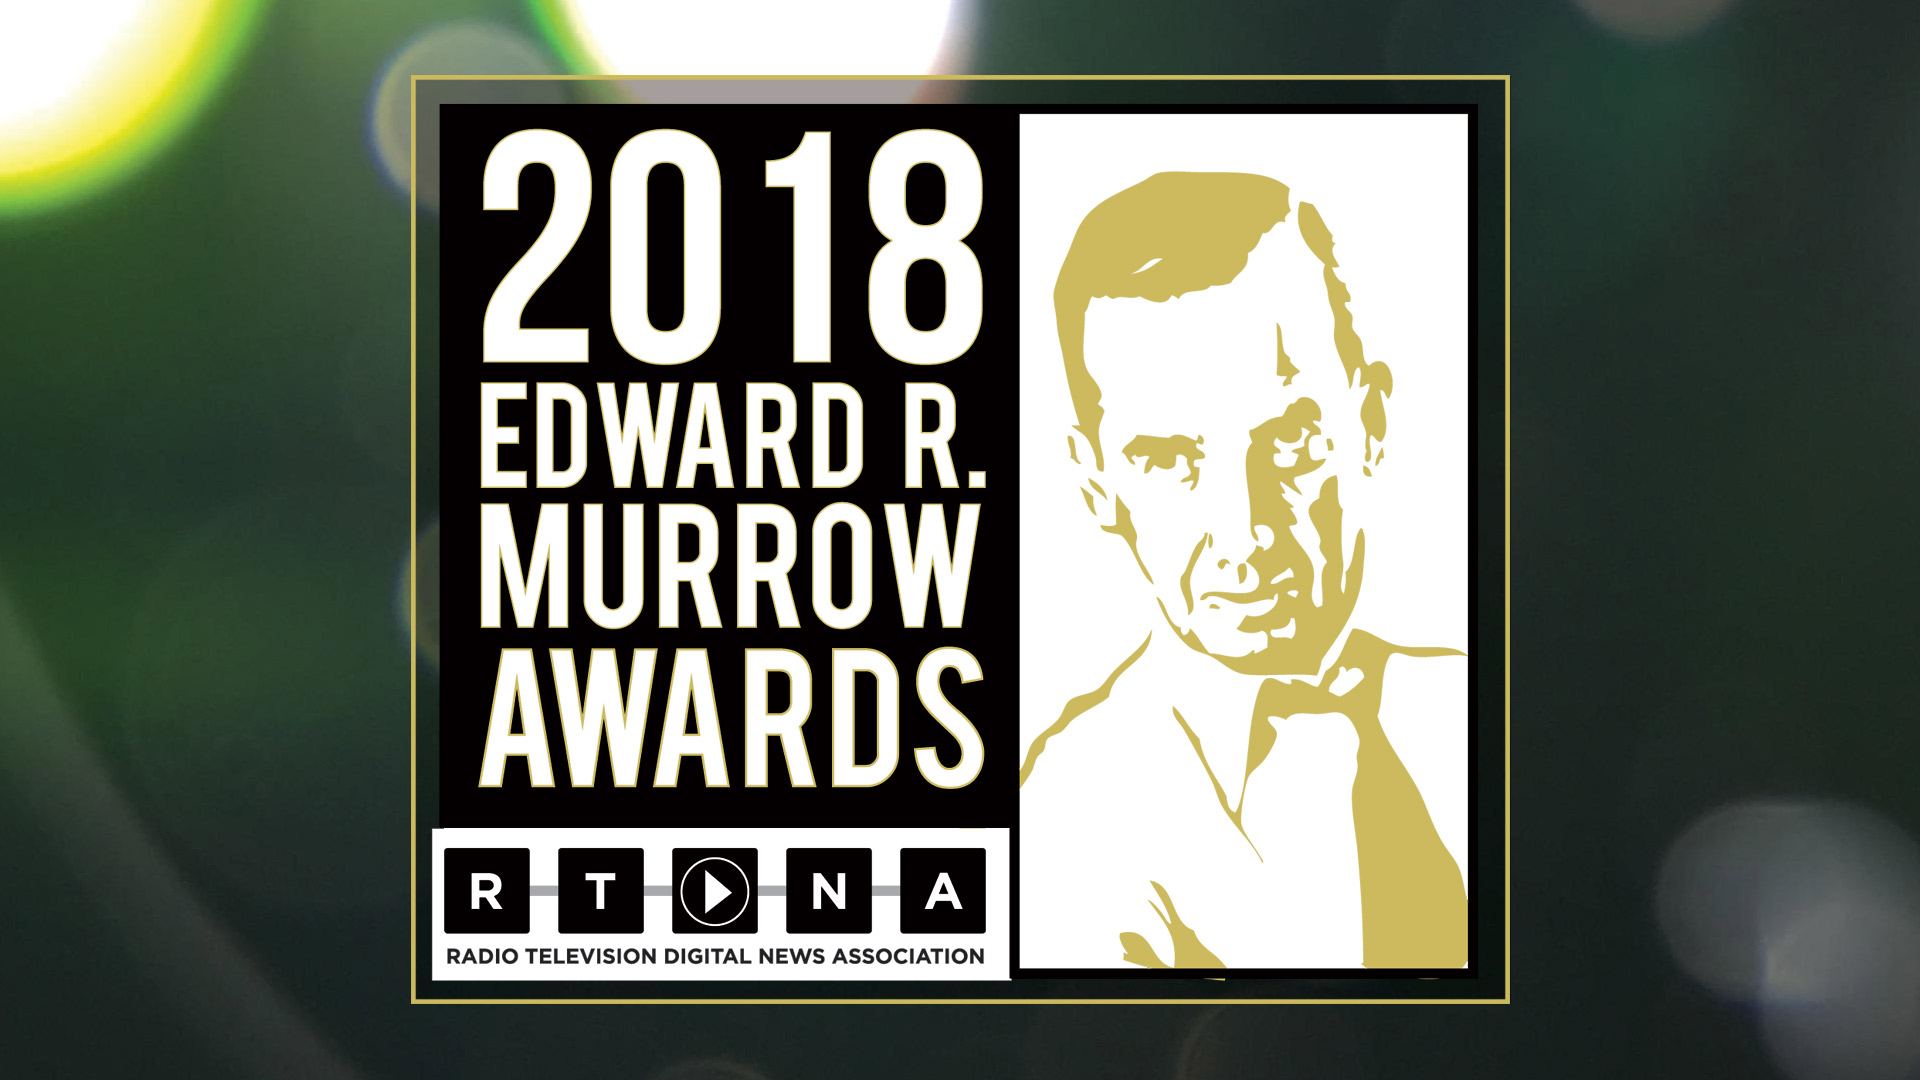 Arizona Public Media has won seven Regional Edward R. Murrow Awards by the Radio Television Digital News Association (RTDNA).